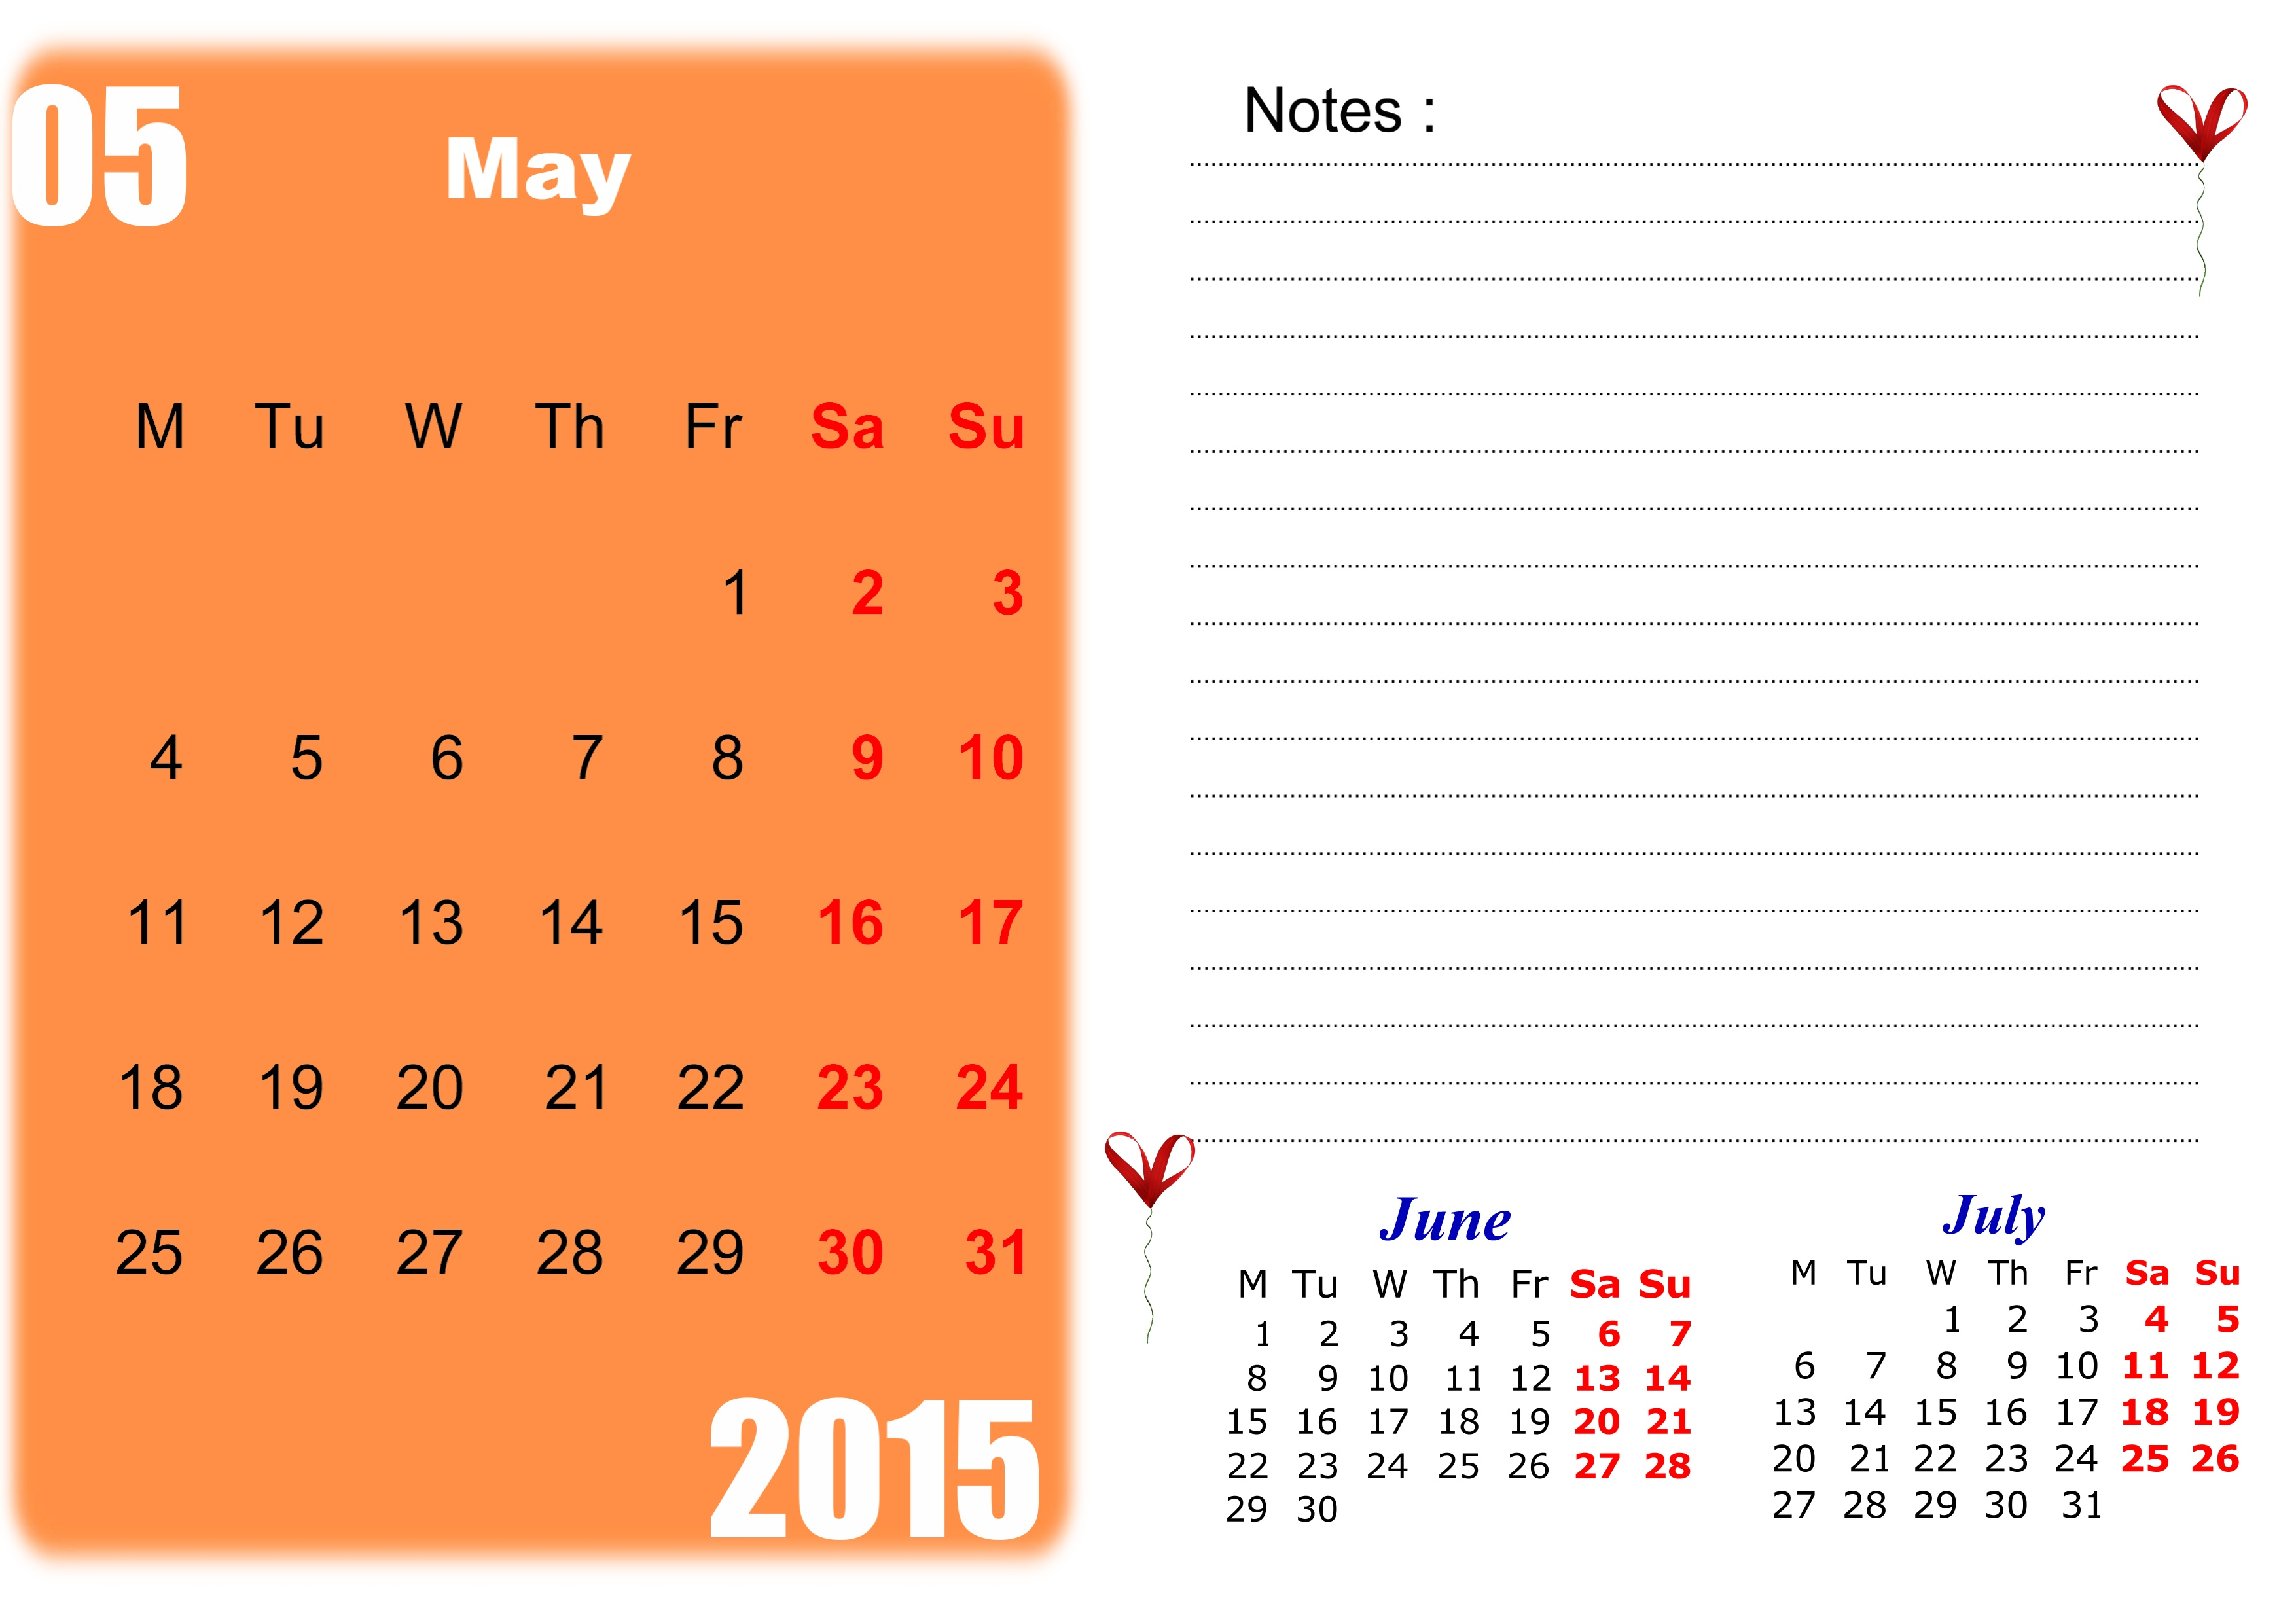 May 2015 Calendar Clipart - Clipart Kid